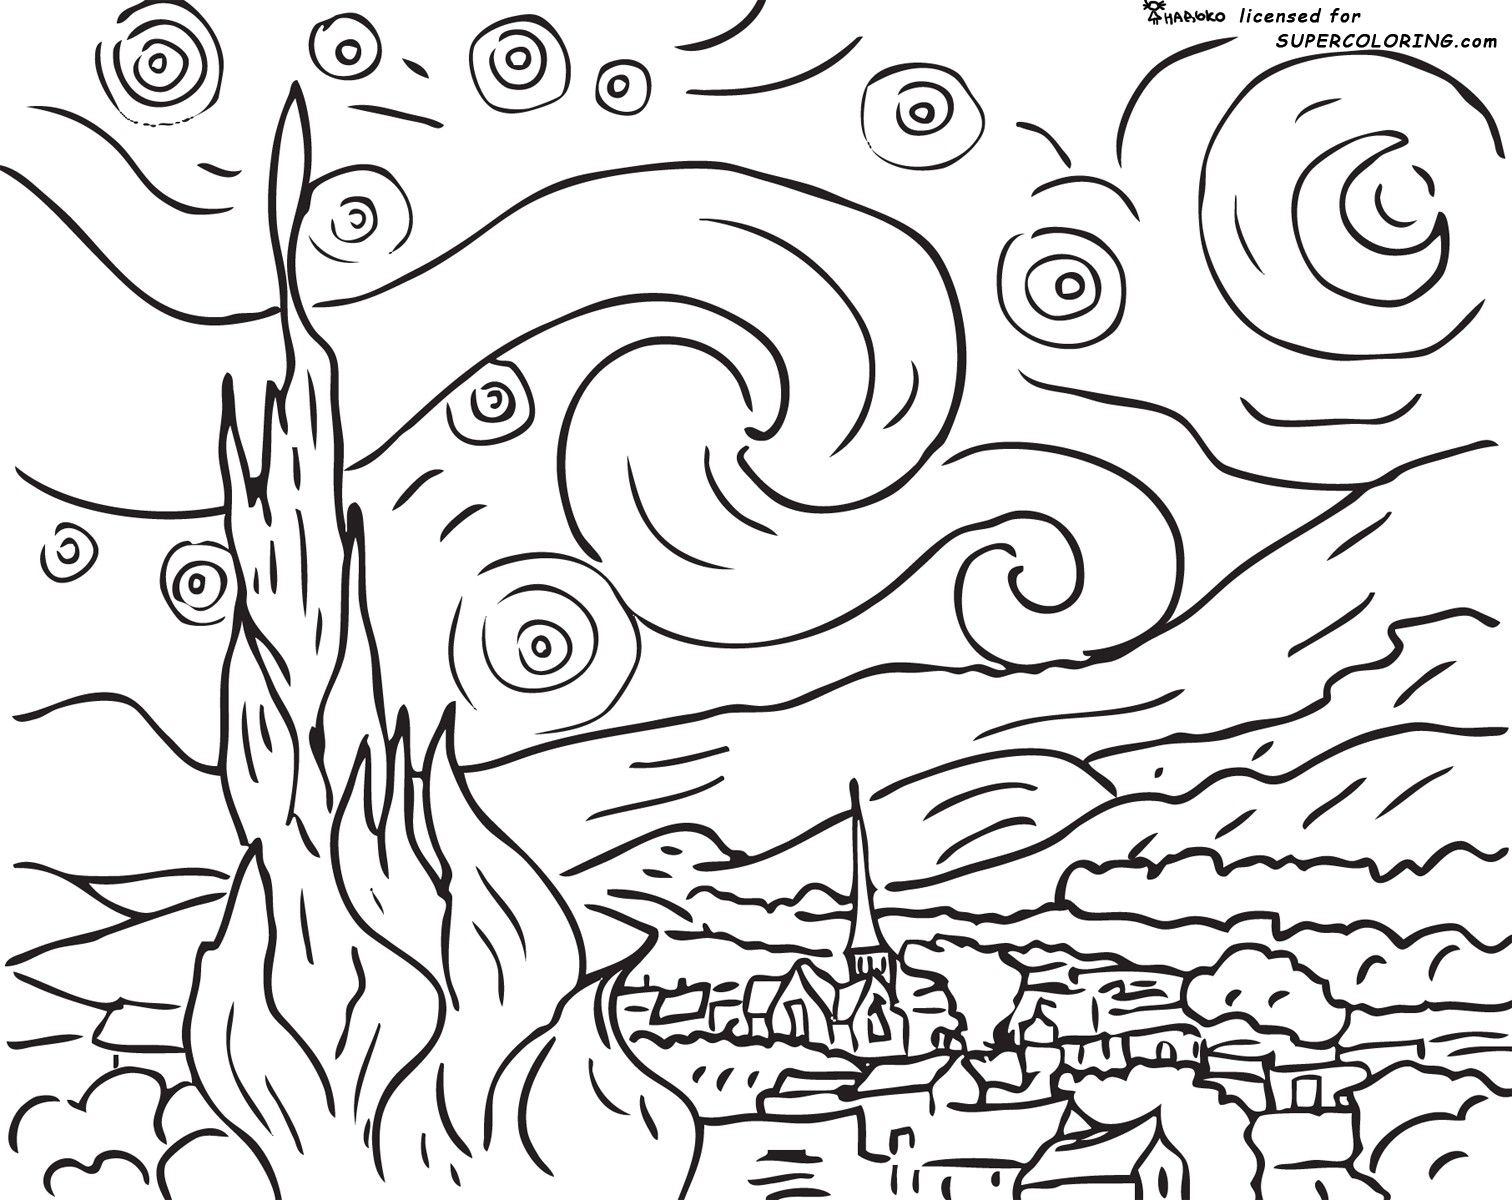 cool coloring pages. coloring pages cool pages to color awesome ...